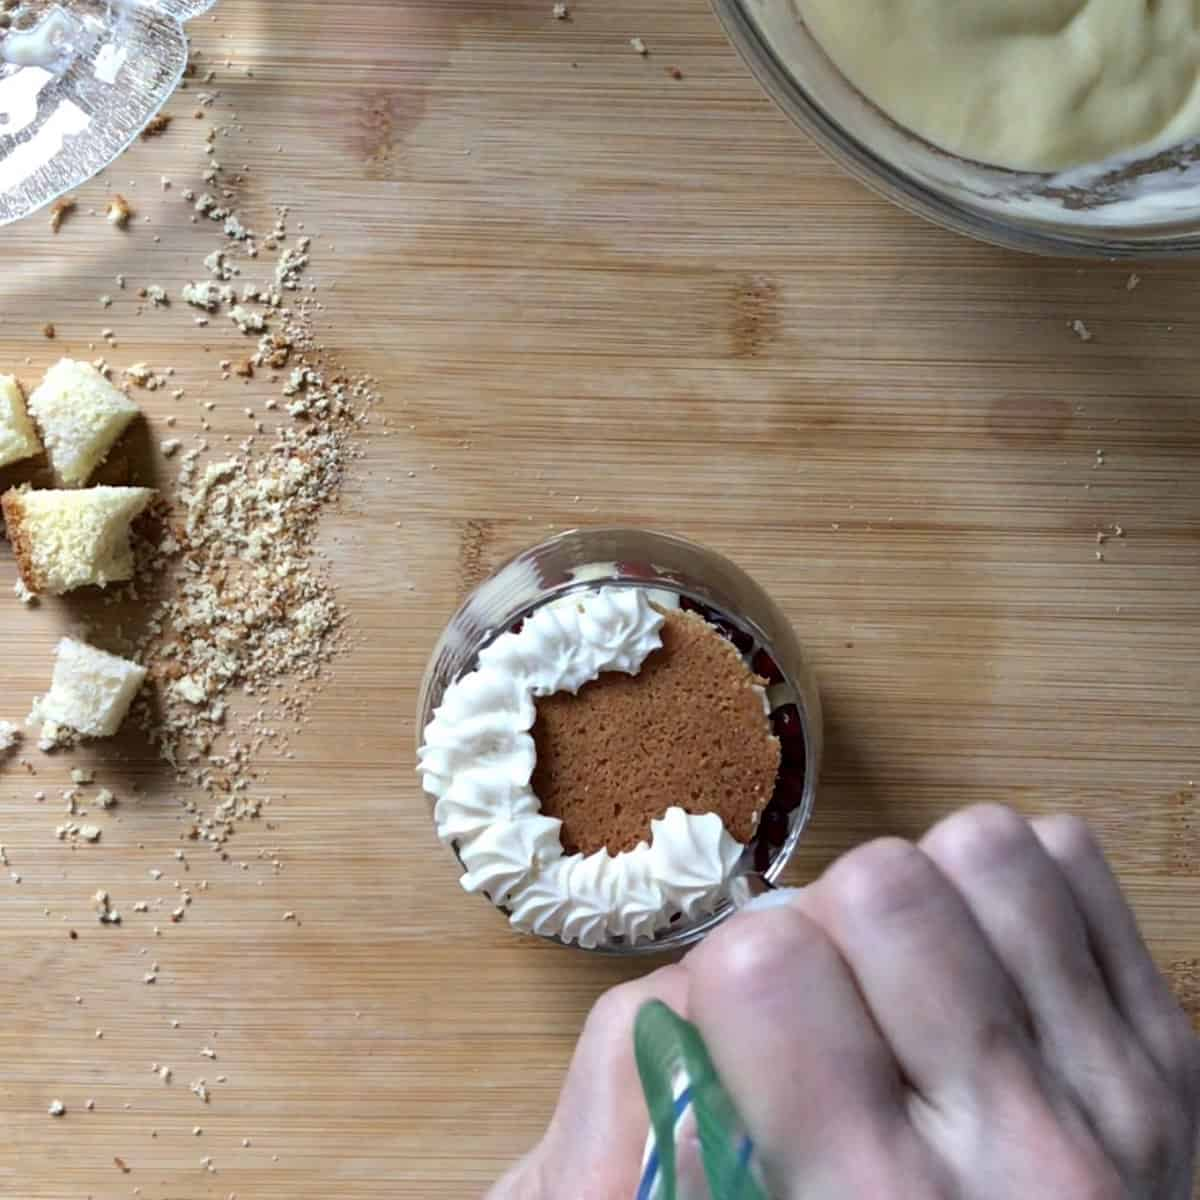 The top layer of the Italian sponge cake is being garnished with whipped ricotta.